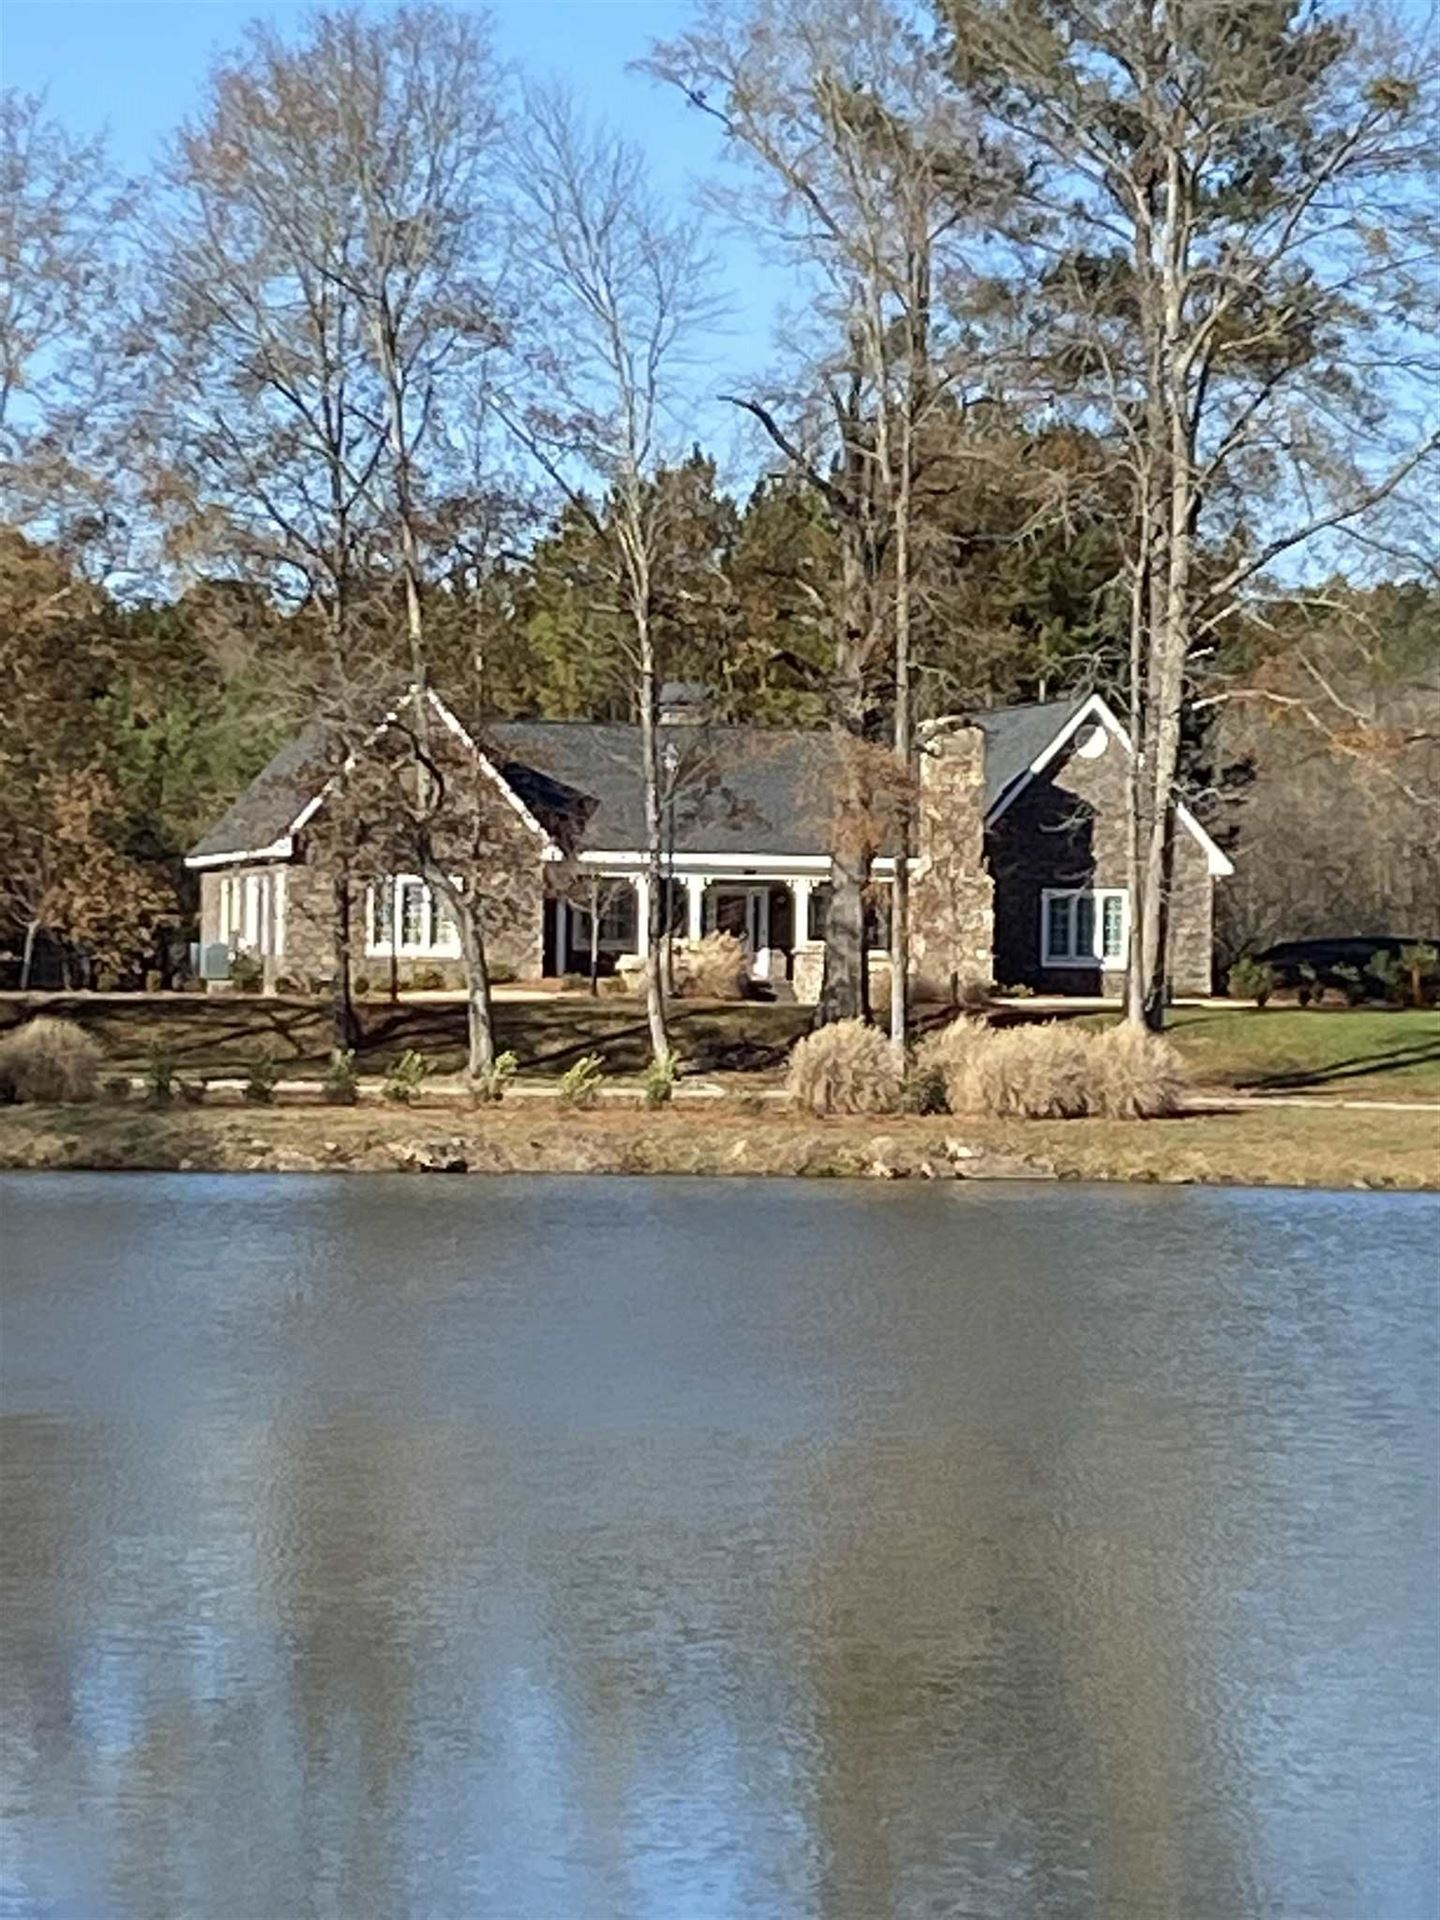 85 Cheney Lake Dr, Rome, GA 30161 - #: 8907849